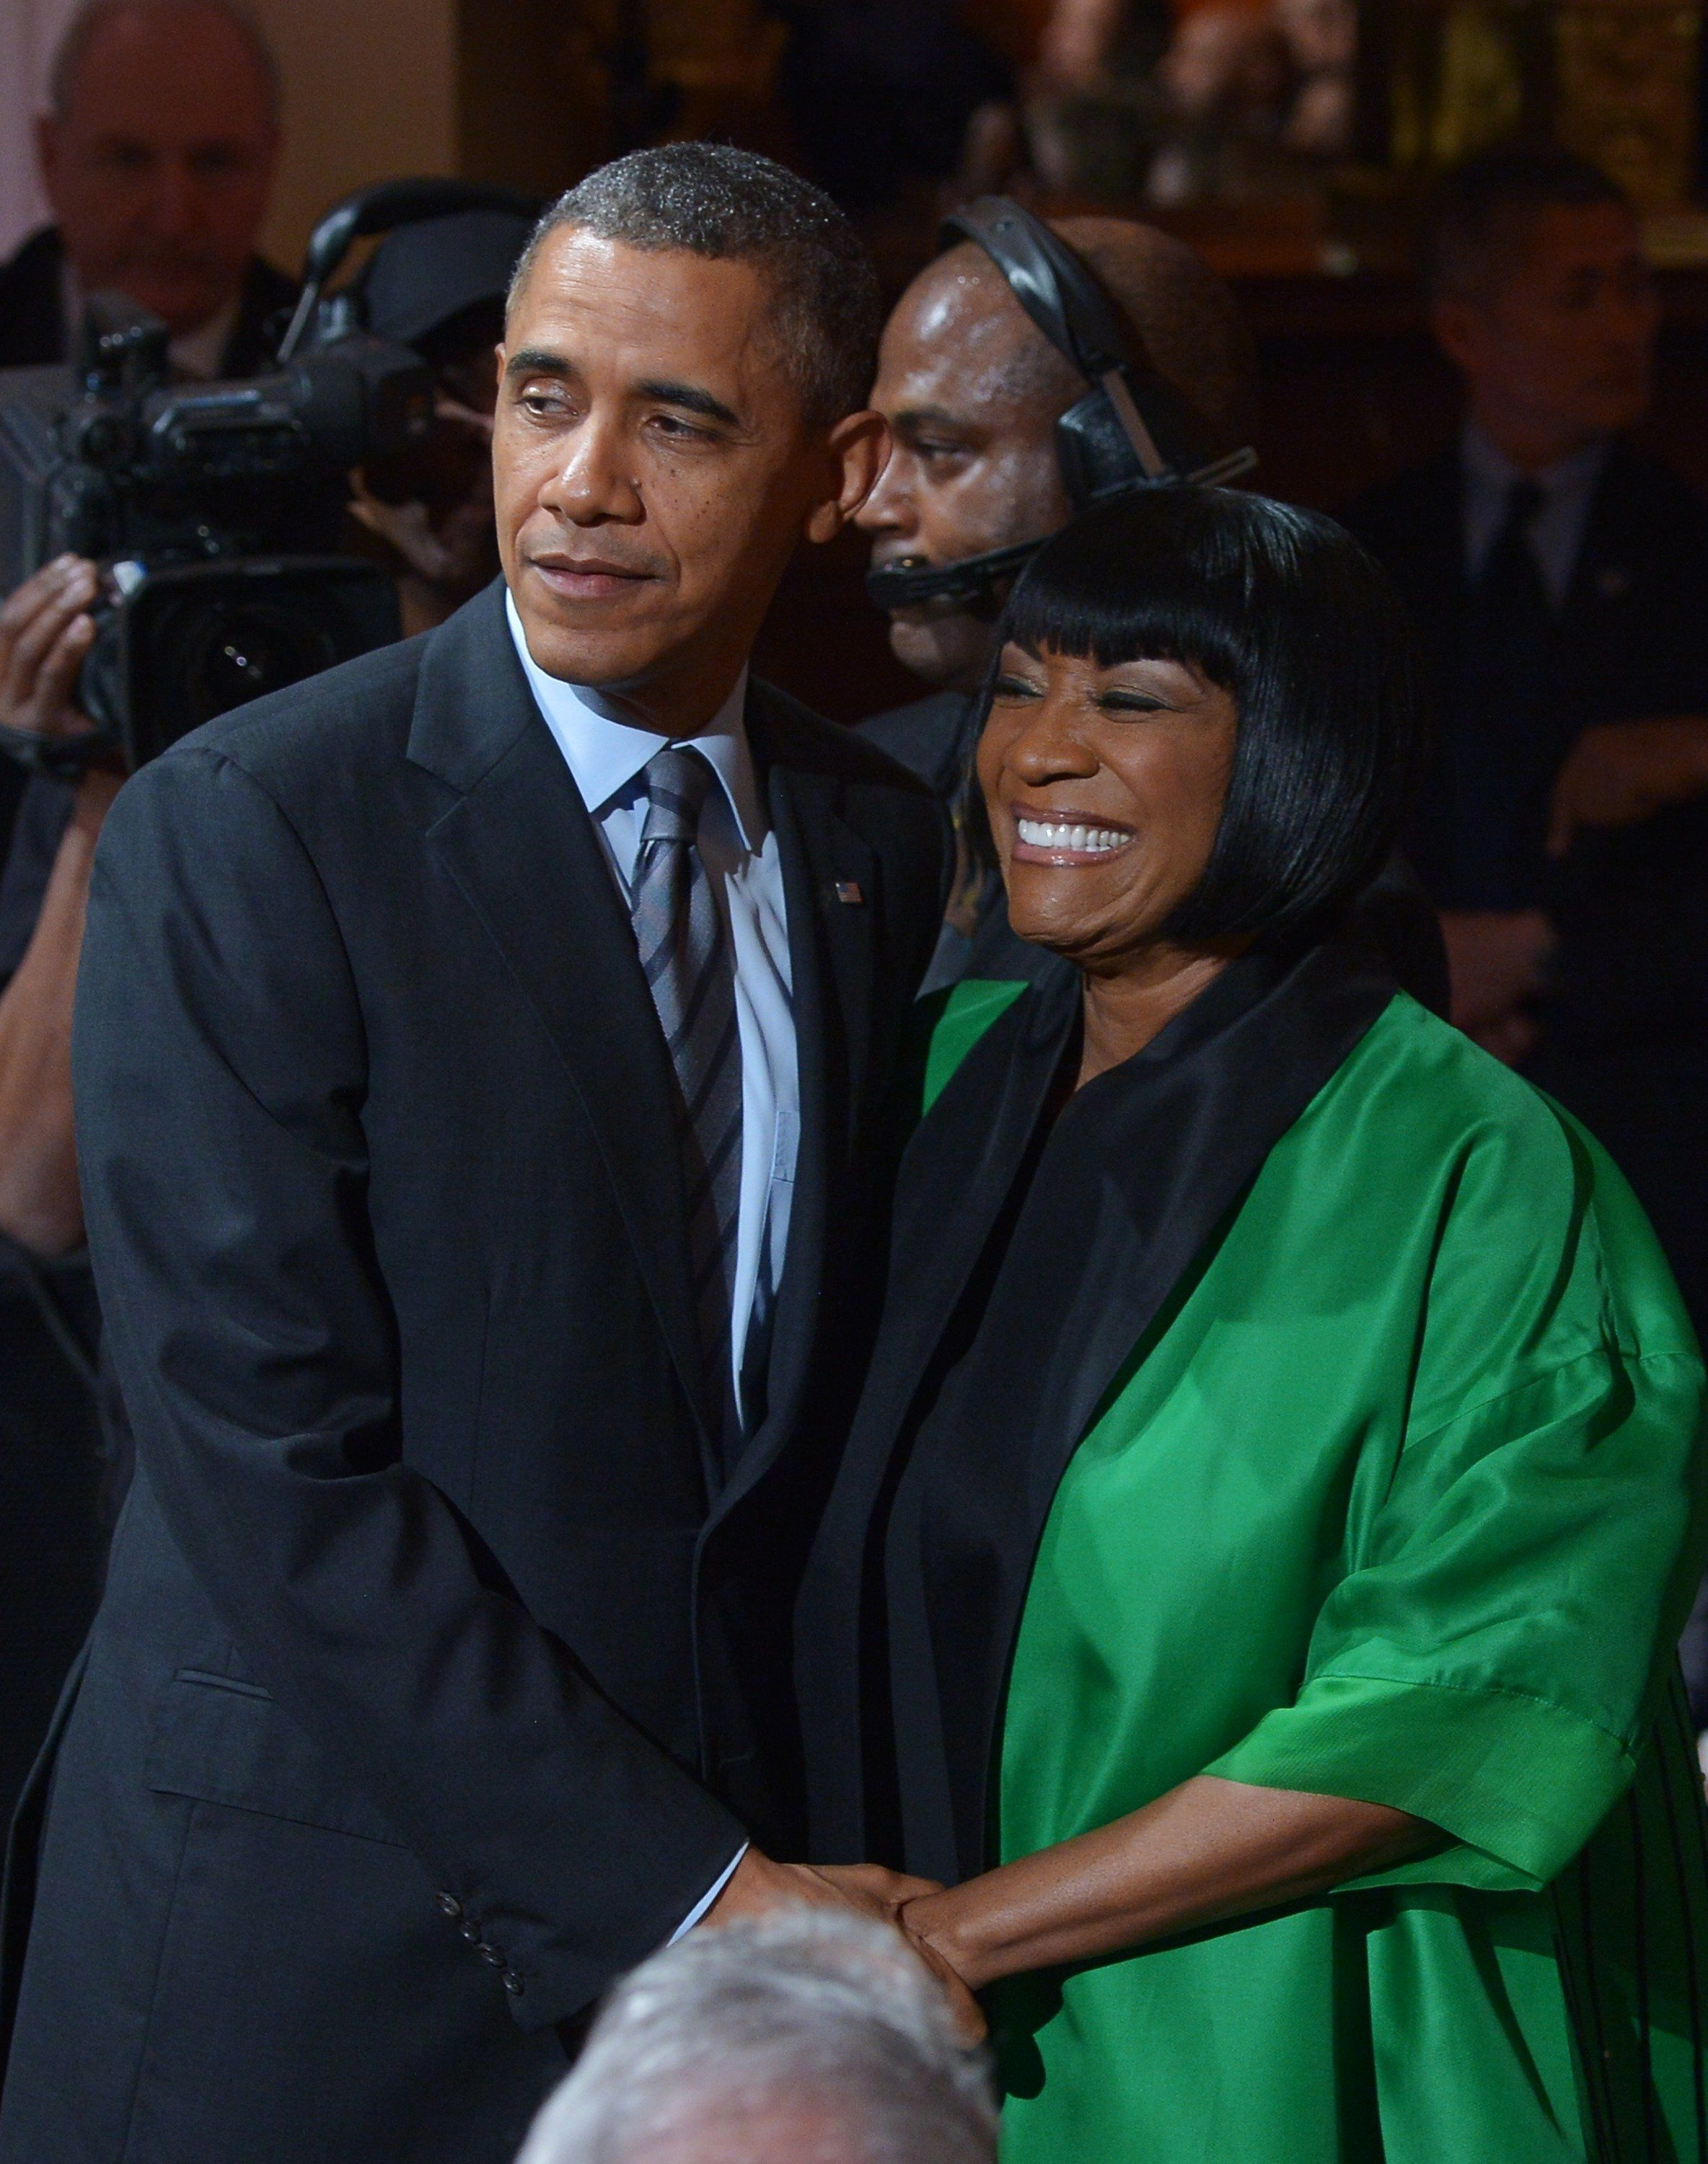 US President Barack Obama chats with singer Patti LaBelle (R) before she arrived on stage at the In Performance at the White House: Women of Soul in the East Room of the White House on March 6, 2014 in Washington, DC. AFP PHOTO/Mandel NGAN        (Photo credit should read MANDEL NGAN/AFP/Getty Images)